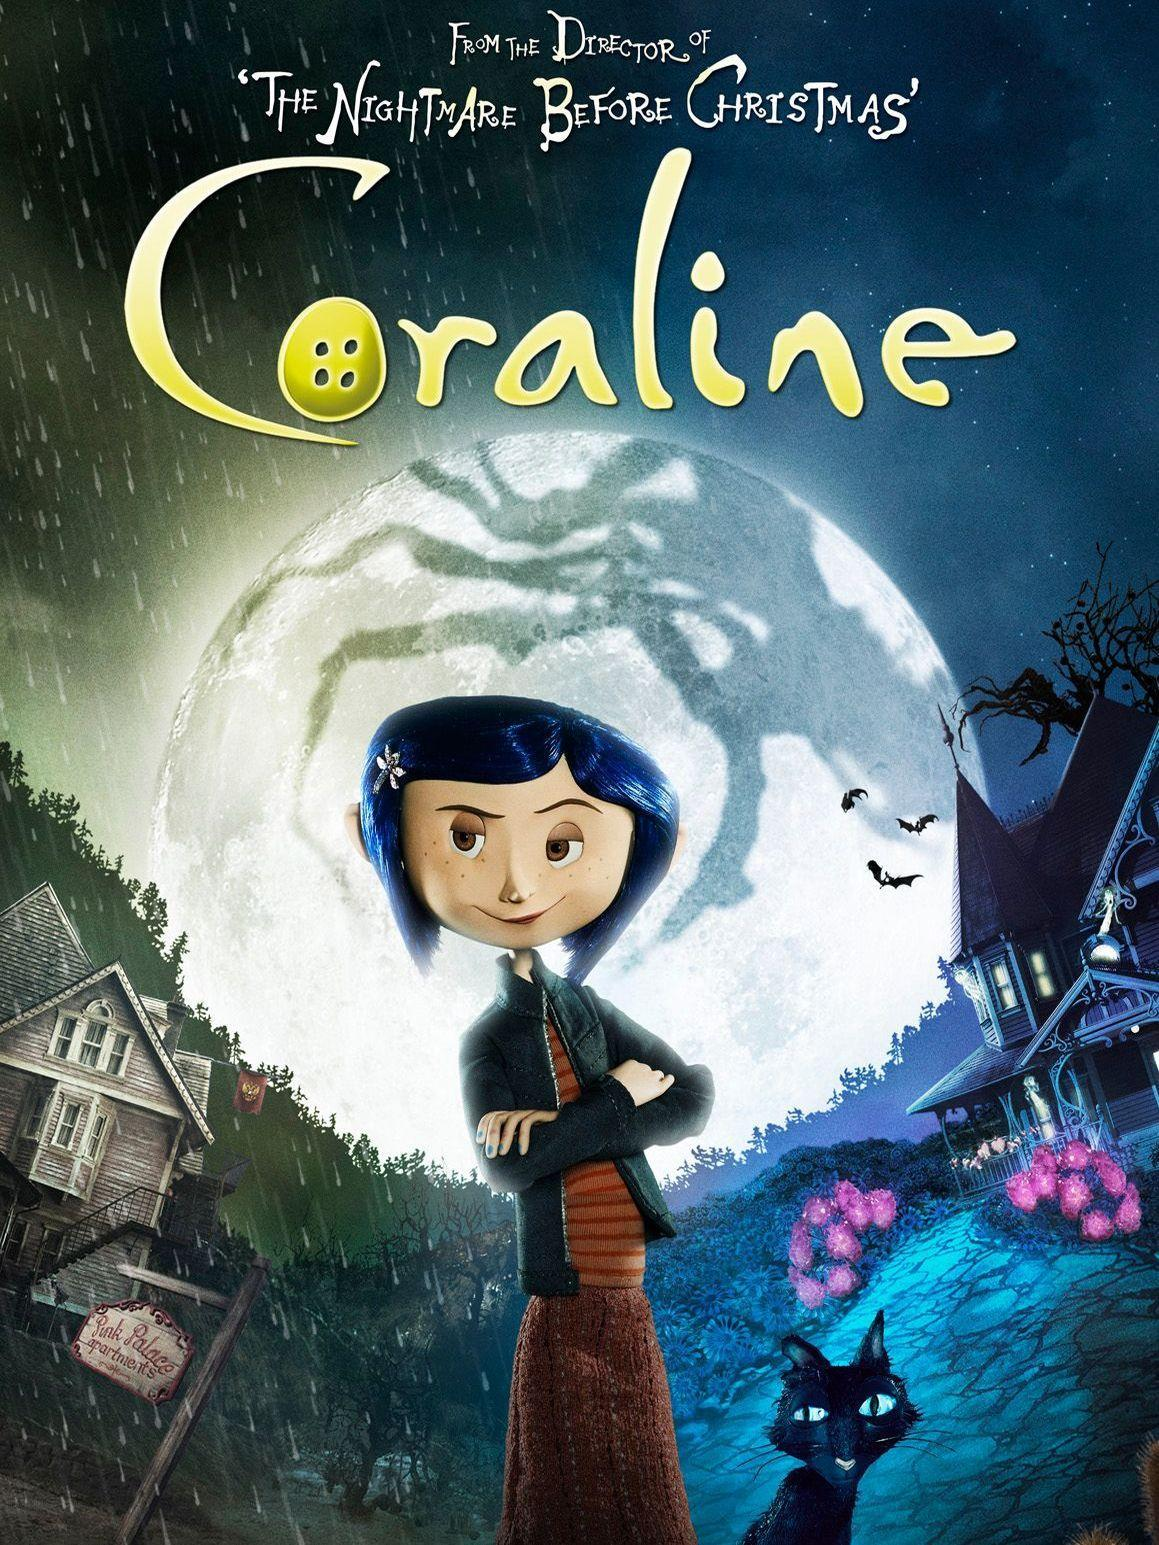 What character from Coroline are you?